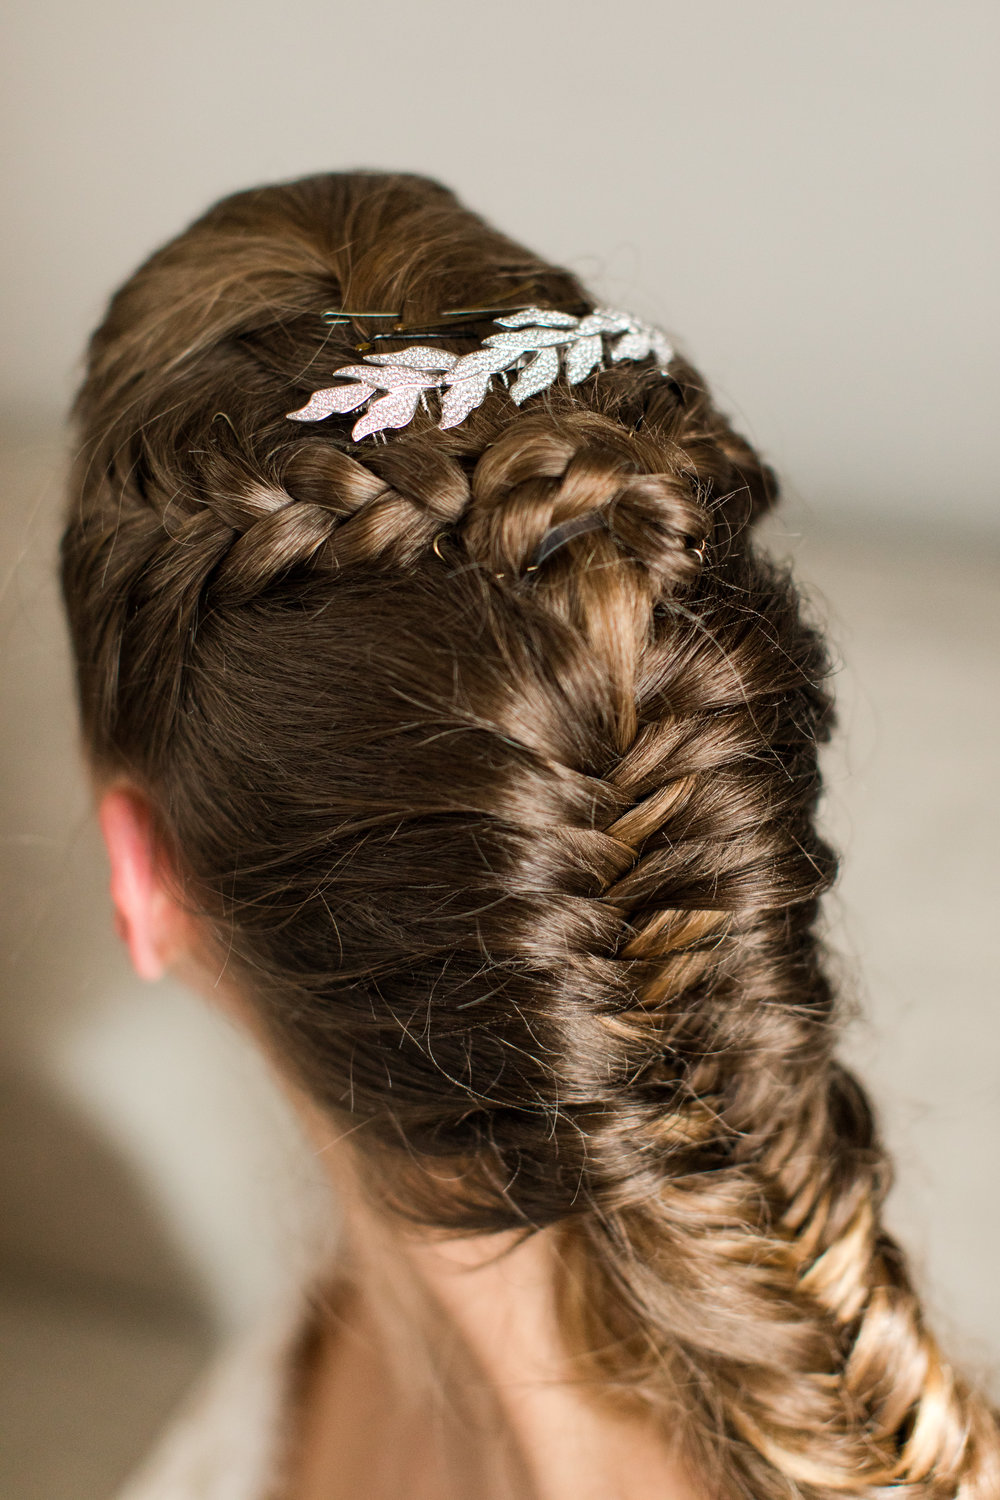 braided bridal hair with rhinestone detail